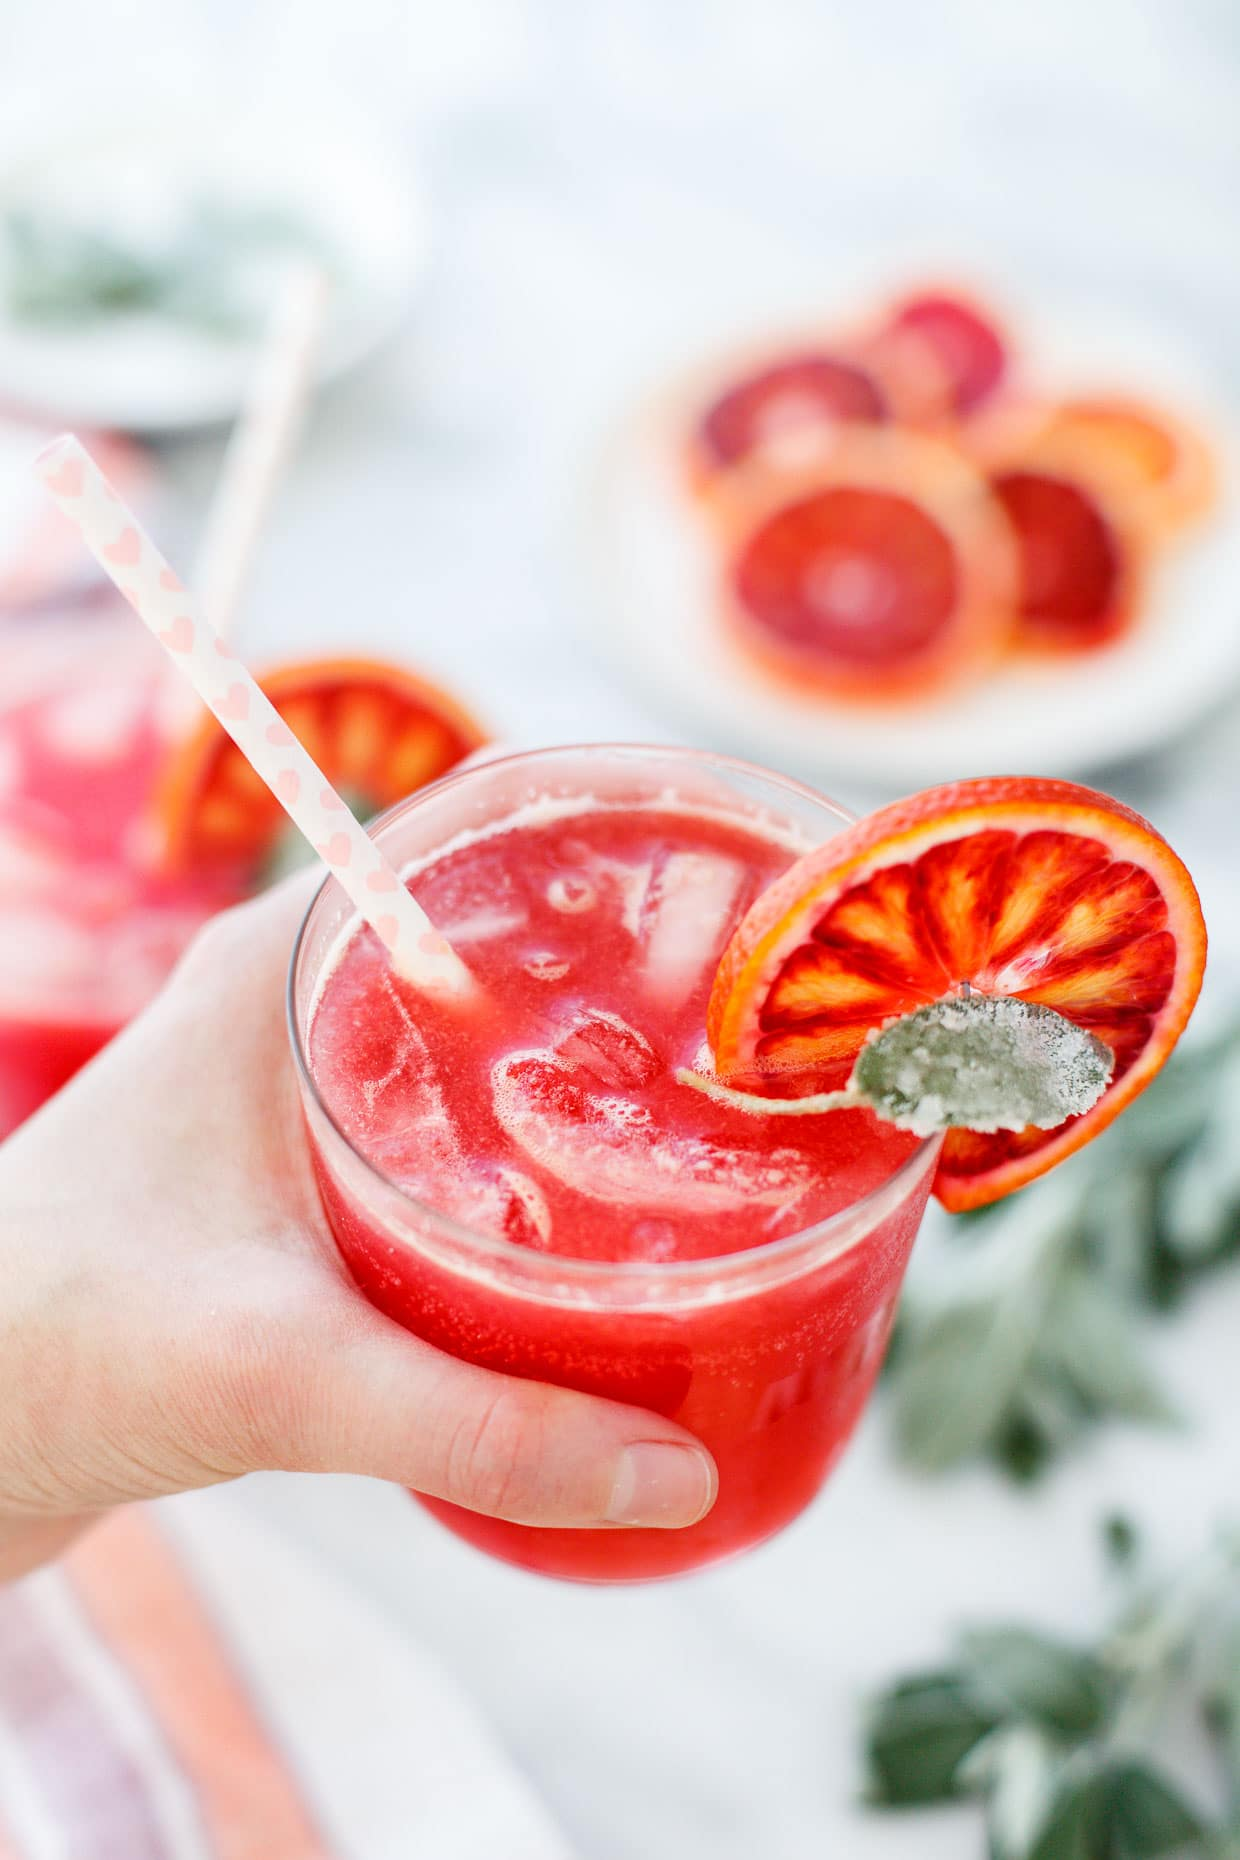 http://www.snixykitchen.com/2015/02/02/blood-orange-and-sage-sparkling-